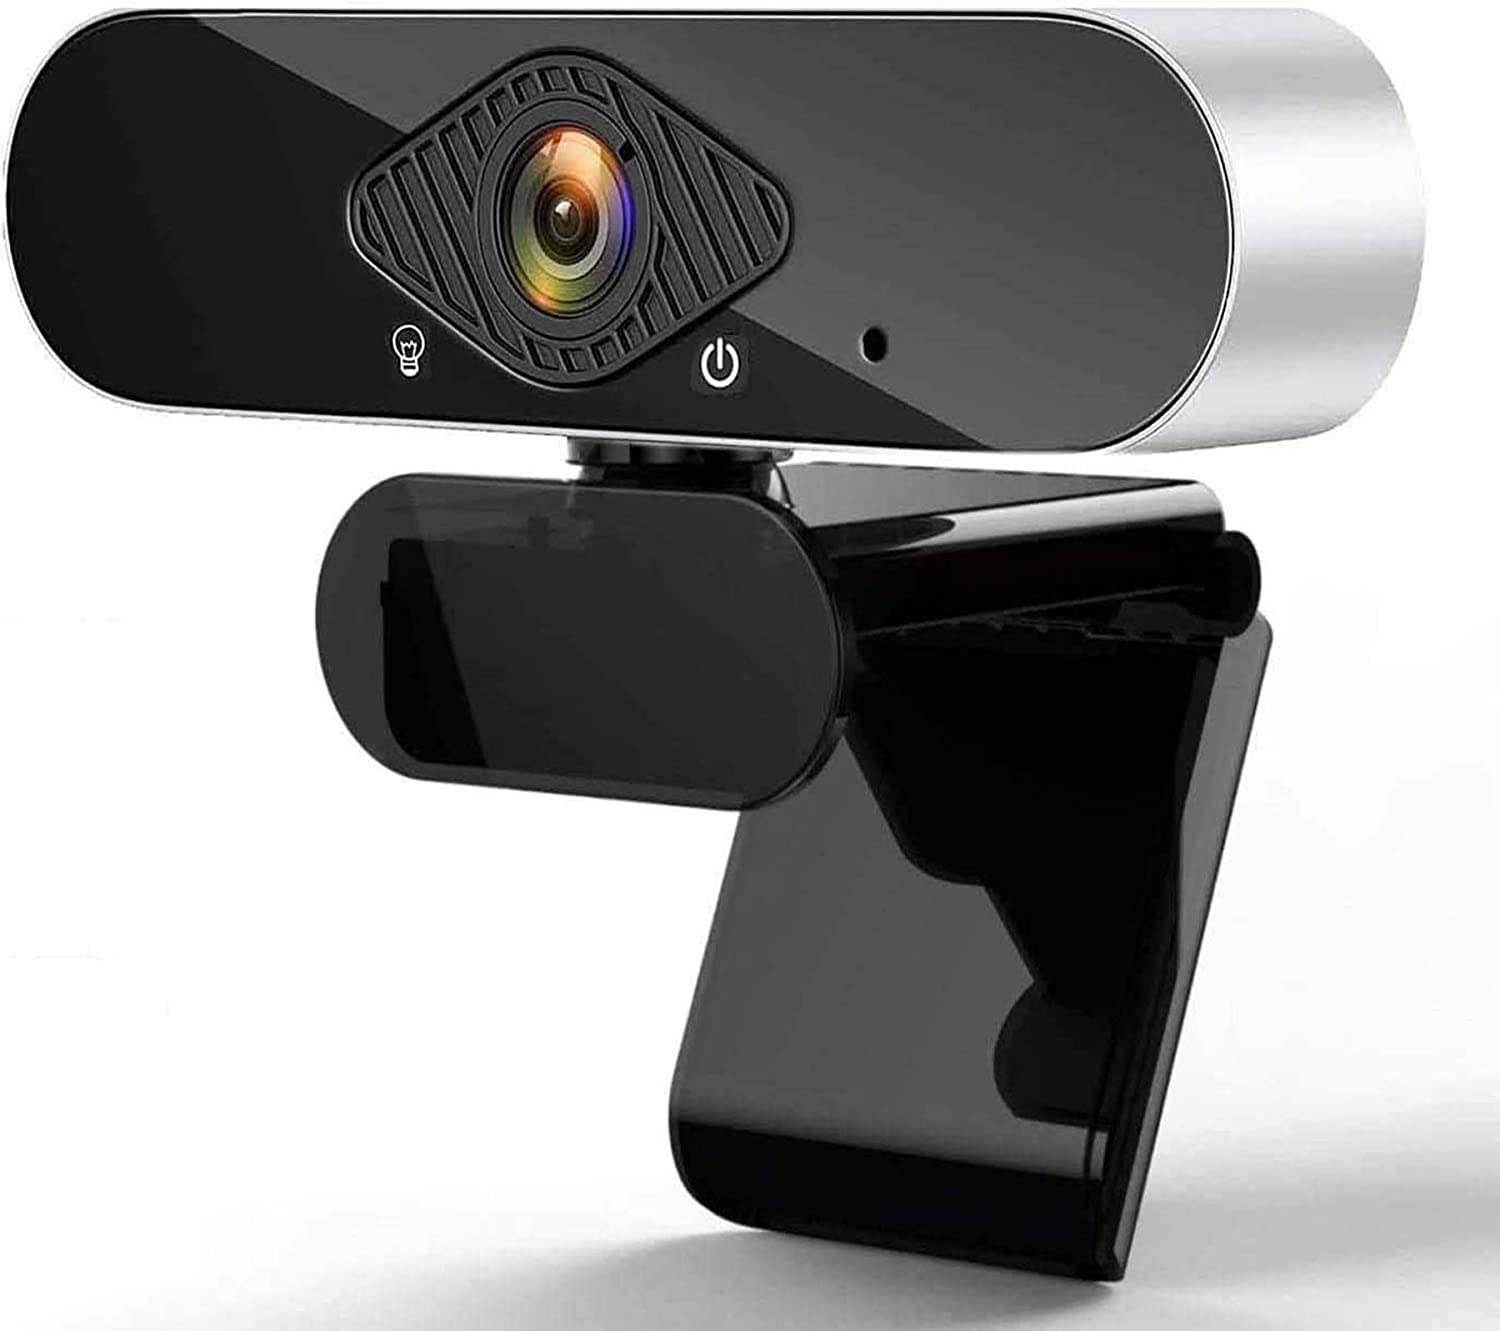 Full HD Webcam with Microphone - 1080P Desktop Computer Webcam, USB Webcam Plug and Play 120-degree Wide Angle, Streaming Webcam with Tripod and Privacy Cover for Video Calling Recording Conferencing